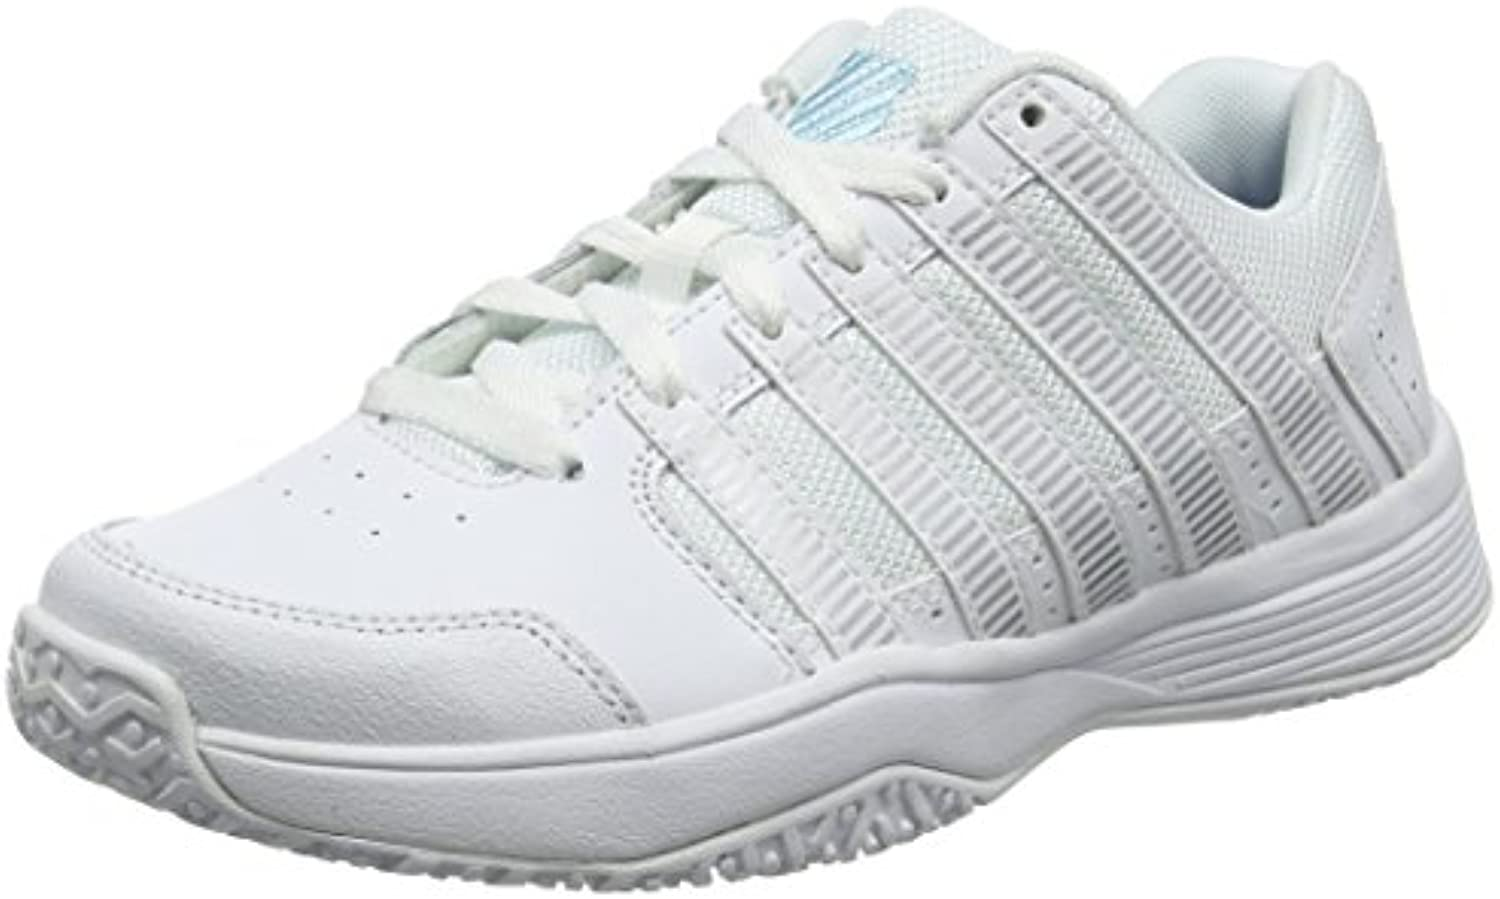 7e64fb749b2 K-Swiss K-Swiss K-Swiss Performance Women rsquo s Court Impact Omni Tennis  Shoes B01N2OP5MM Parent 4f2b2b